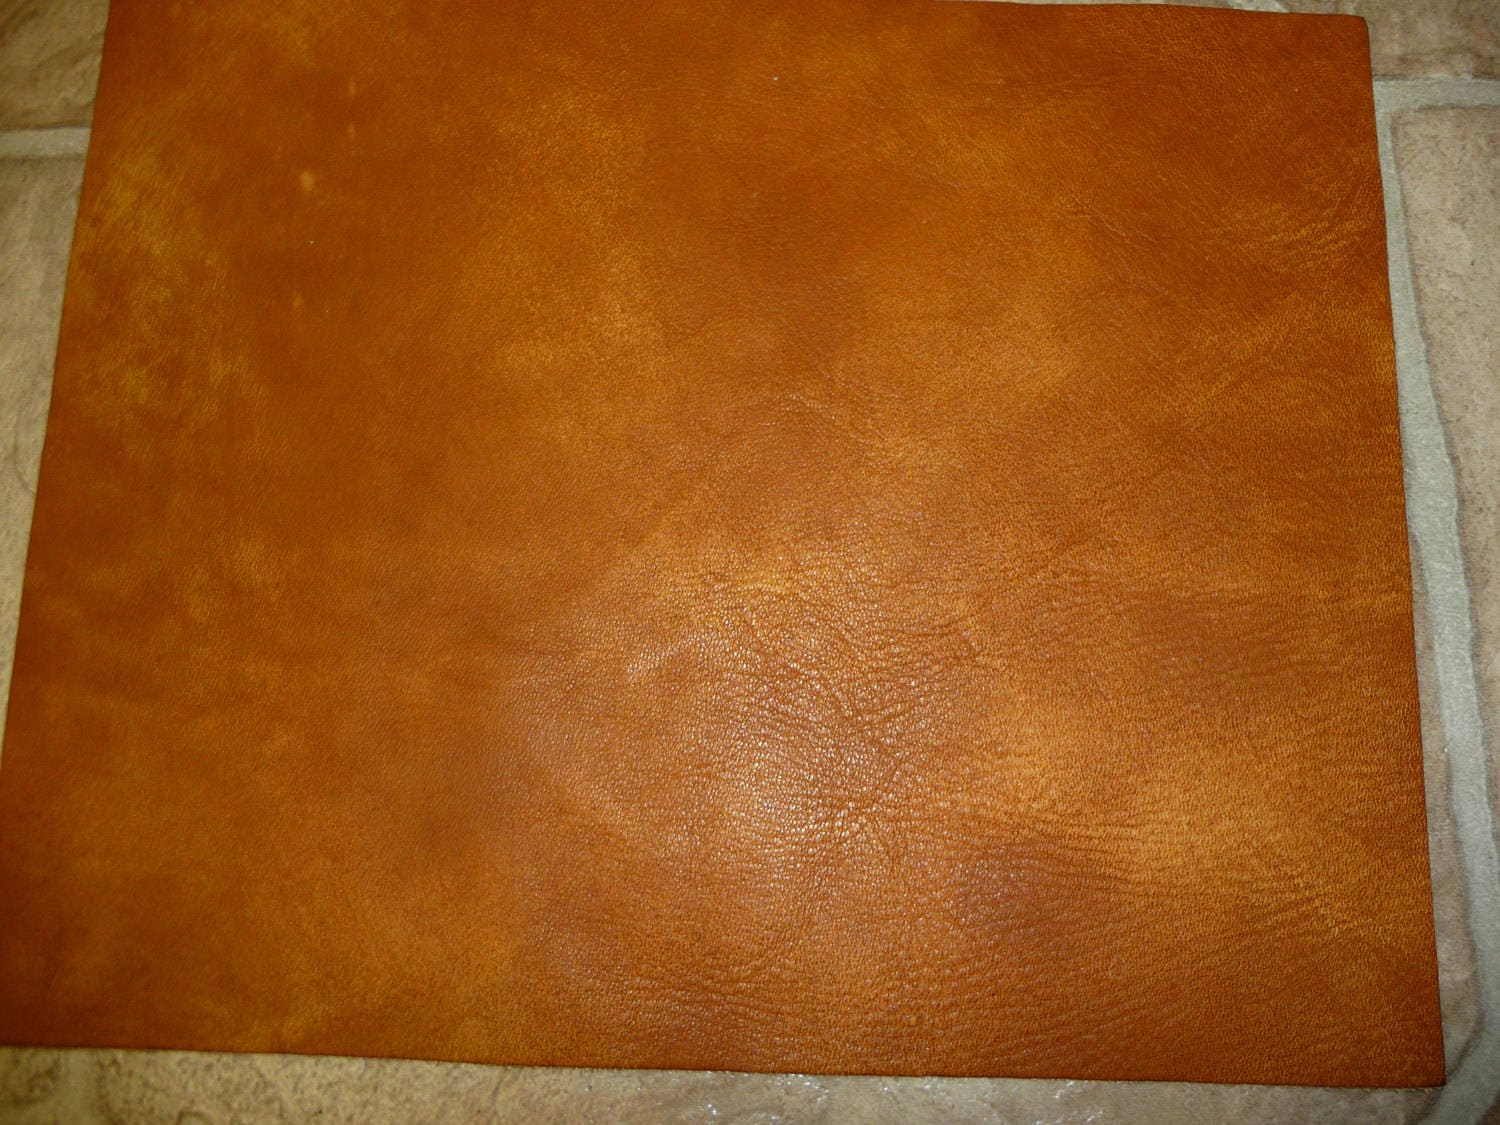 Precut Leather 3 sq ft Artisian Tie Dye CREAMY CAMEL Distressed Cowhide 4 oz  1.6 mm #318 PeggySueAlso\u2122 E2920-06 Full hides available